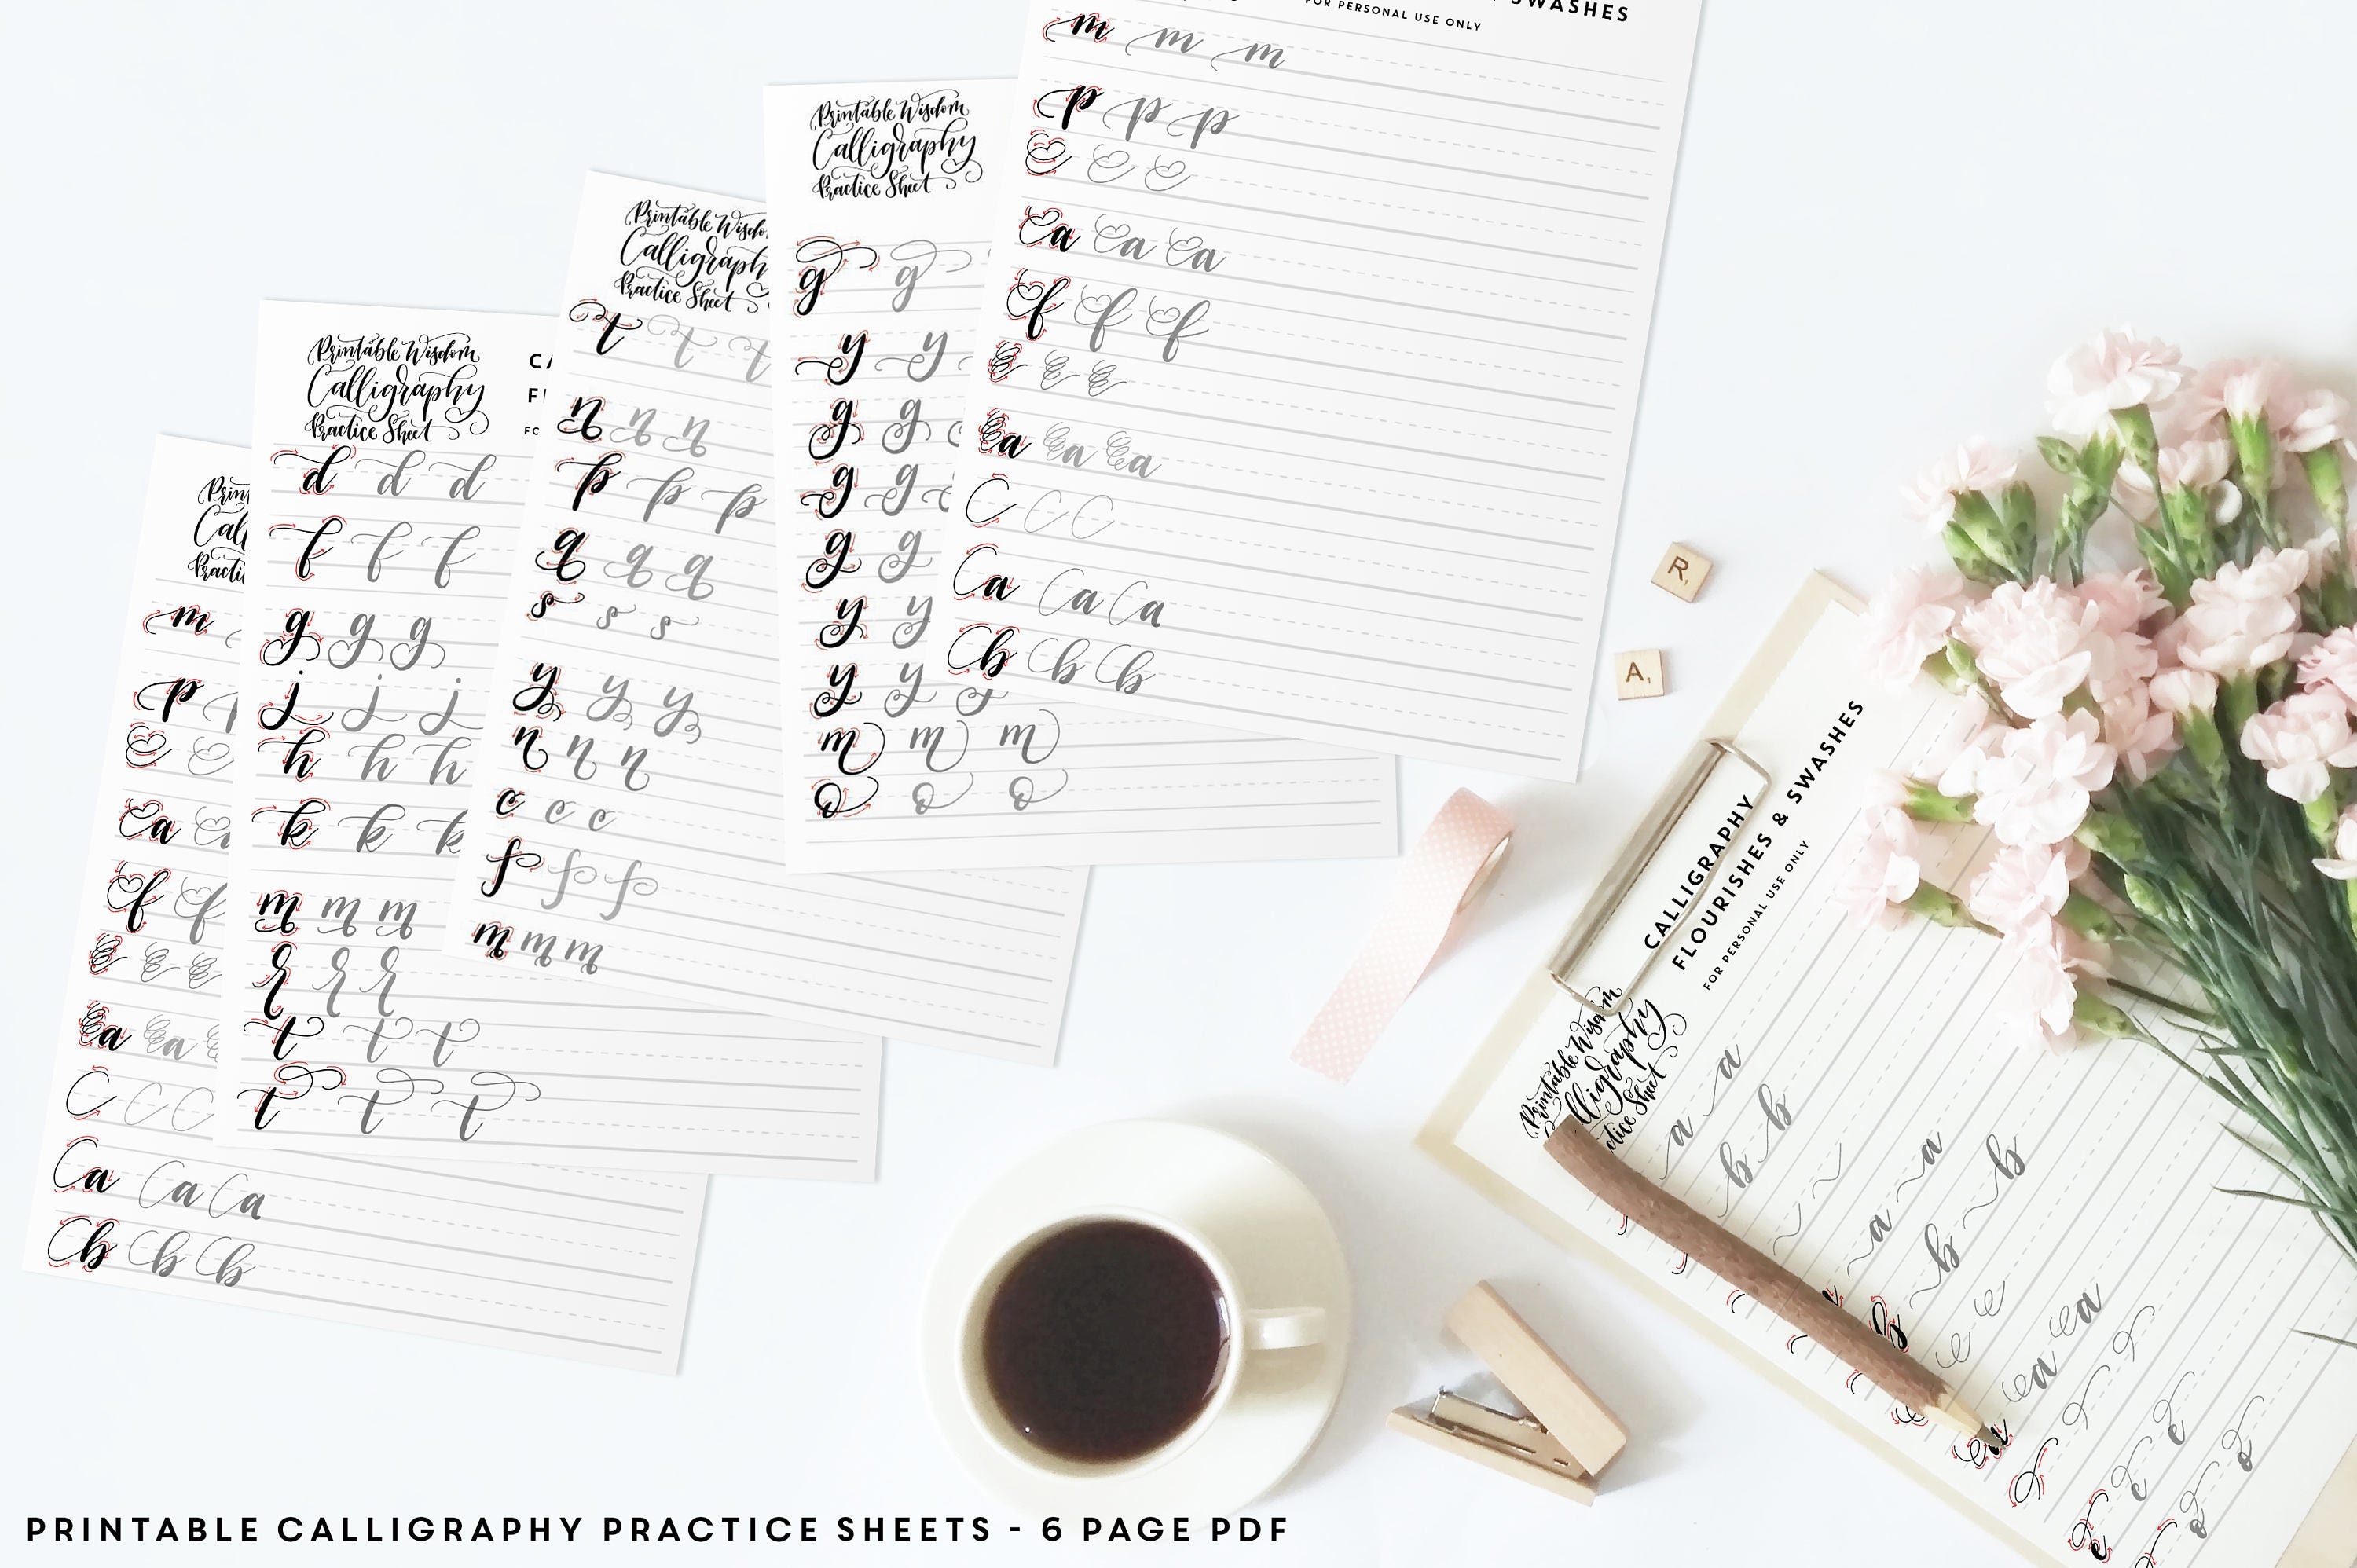 Free Printable Word Family Worksheets Calligraphy Flourish Practice Sheets Learn Calligraphy Pdf  3rd Grade Fractions Worksheet Pdf with Free Printable Worksheets For Grade 5 This Is A Digital File Spelling Worksheets Grade 8 Word